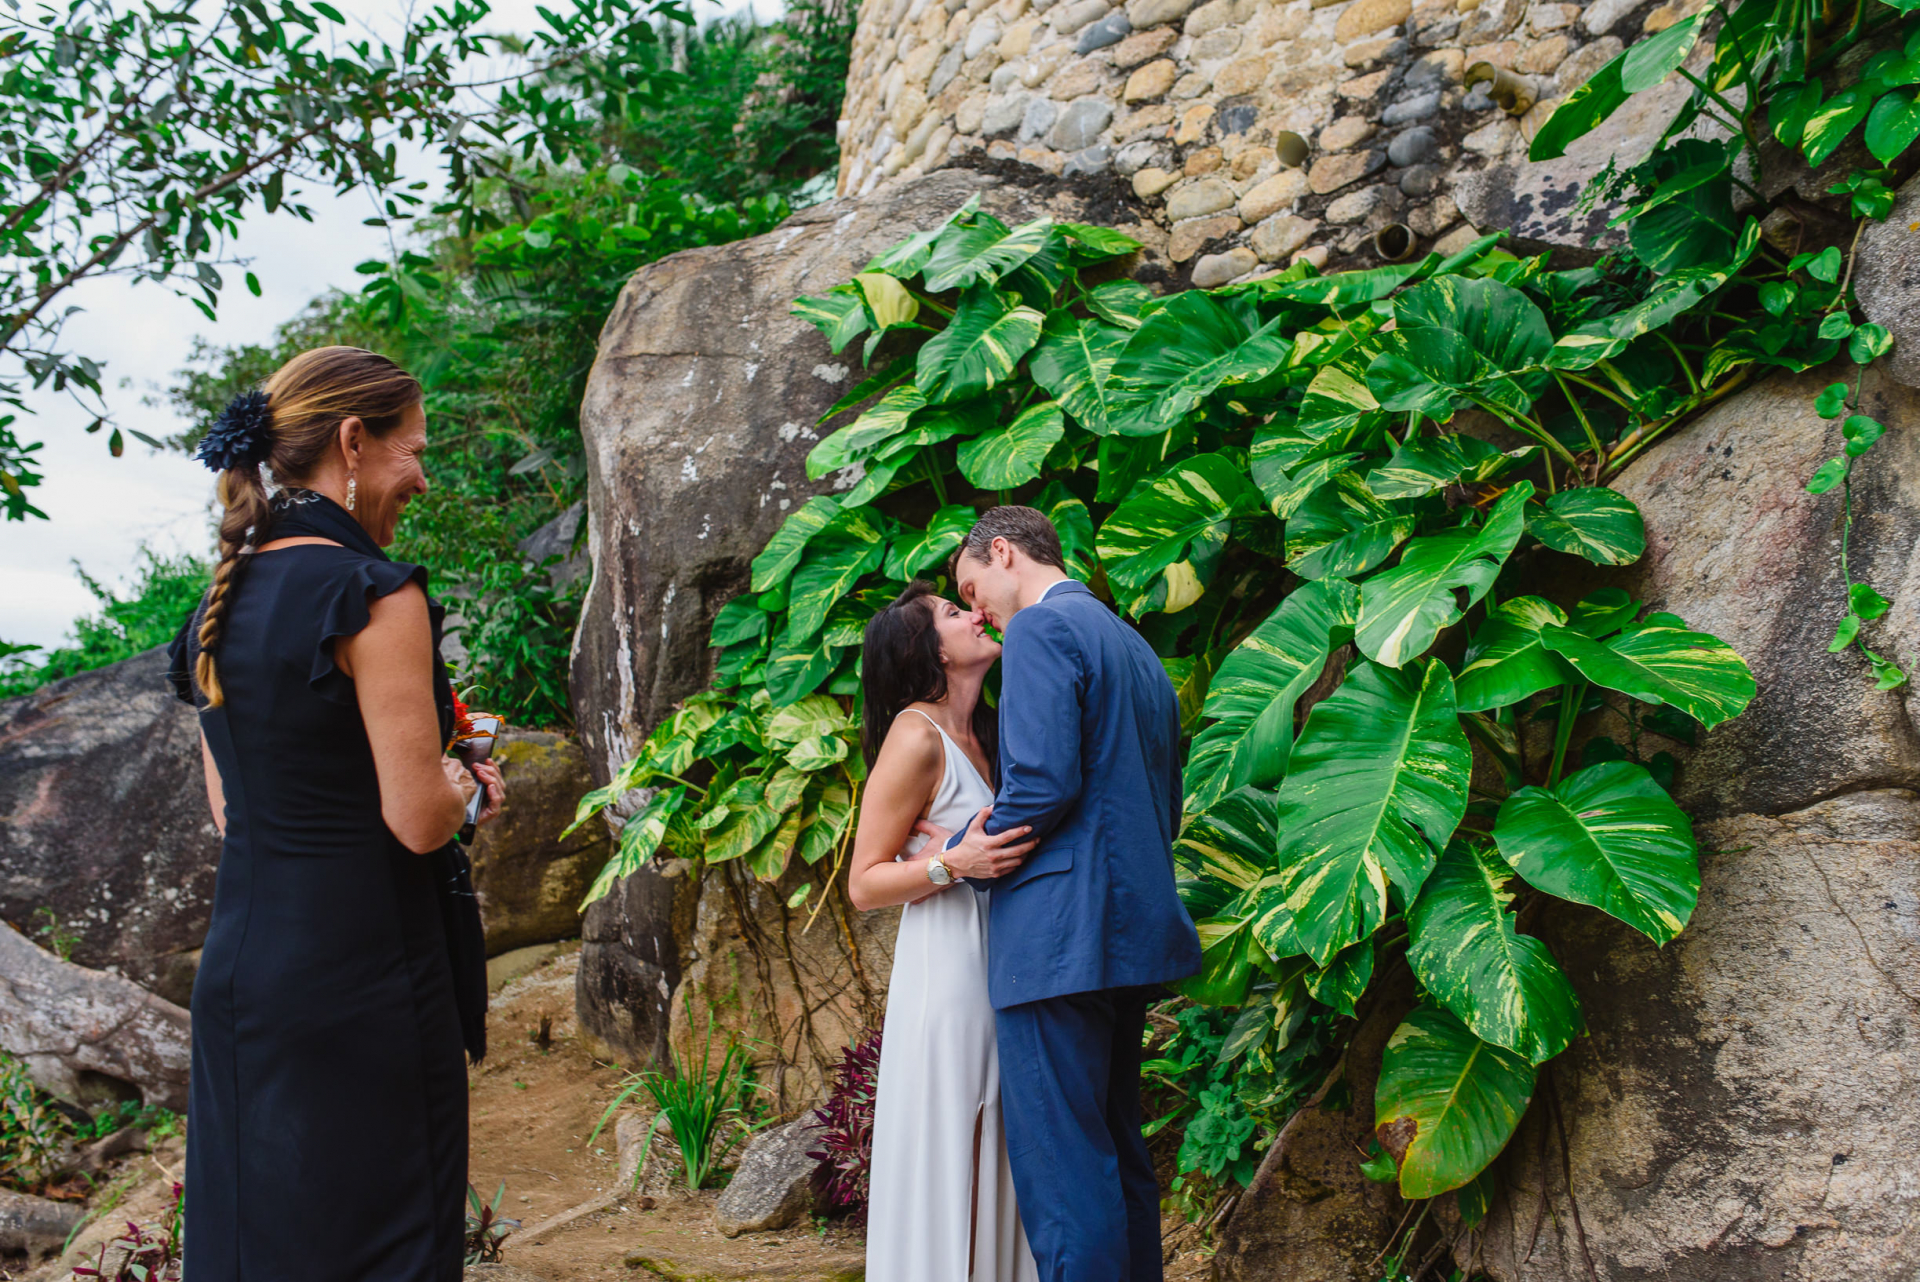 Yelapa, Mexico Elopement Ceremony Picture | The officiant smiles as she gives the couple permission to kiss, concluding this tropical, secluded, and intimate ceremony